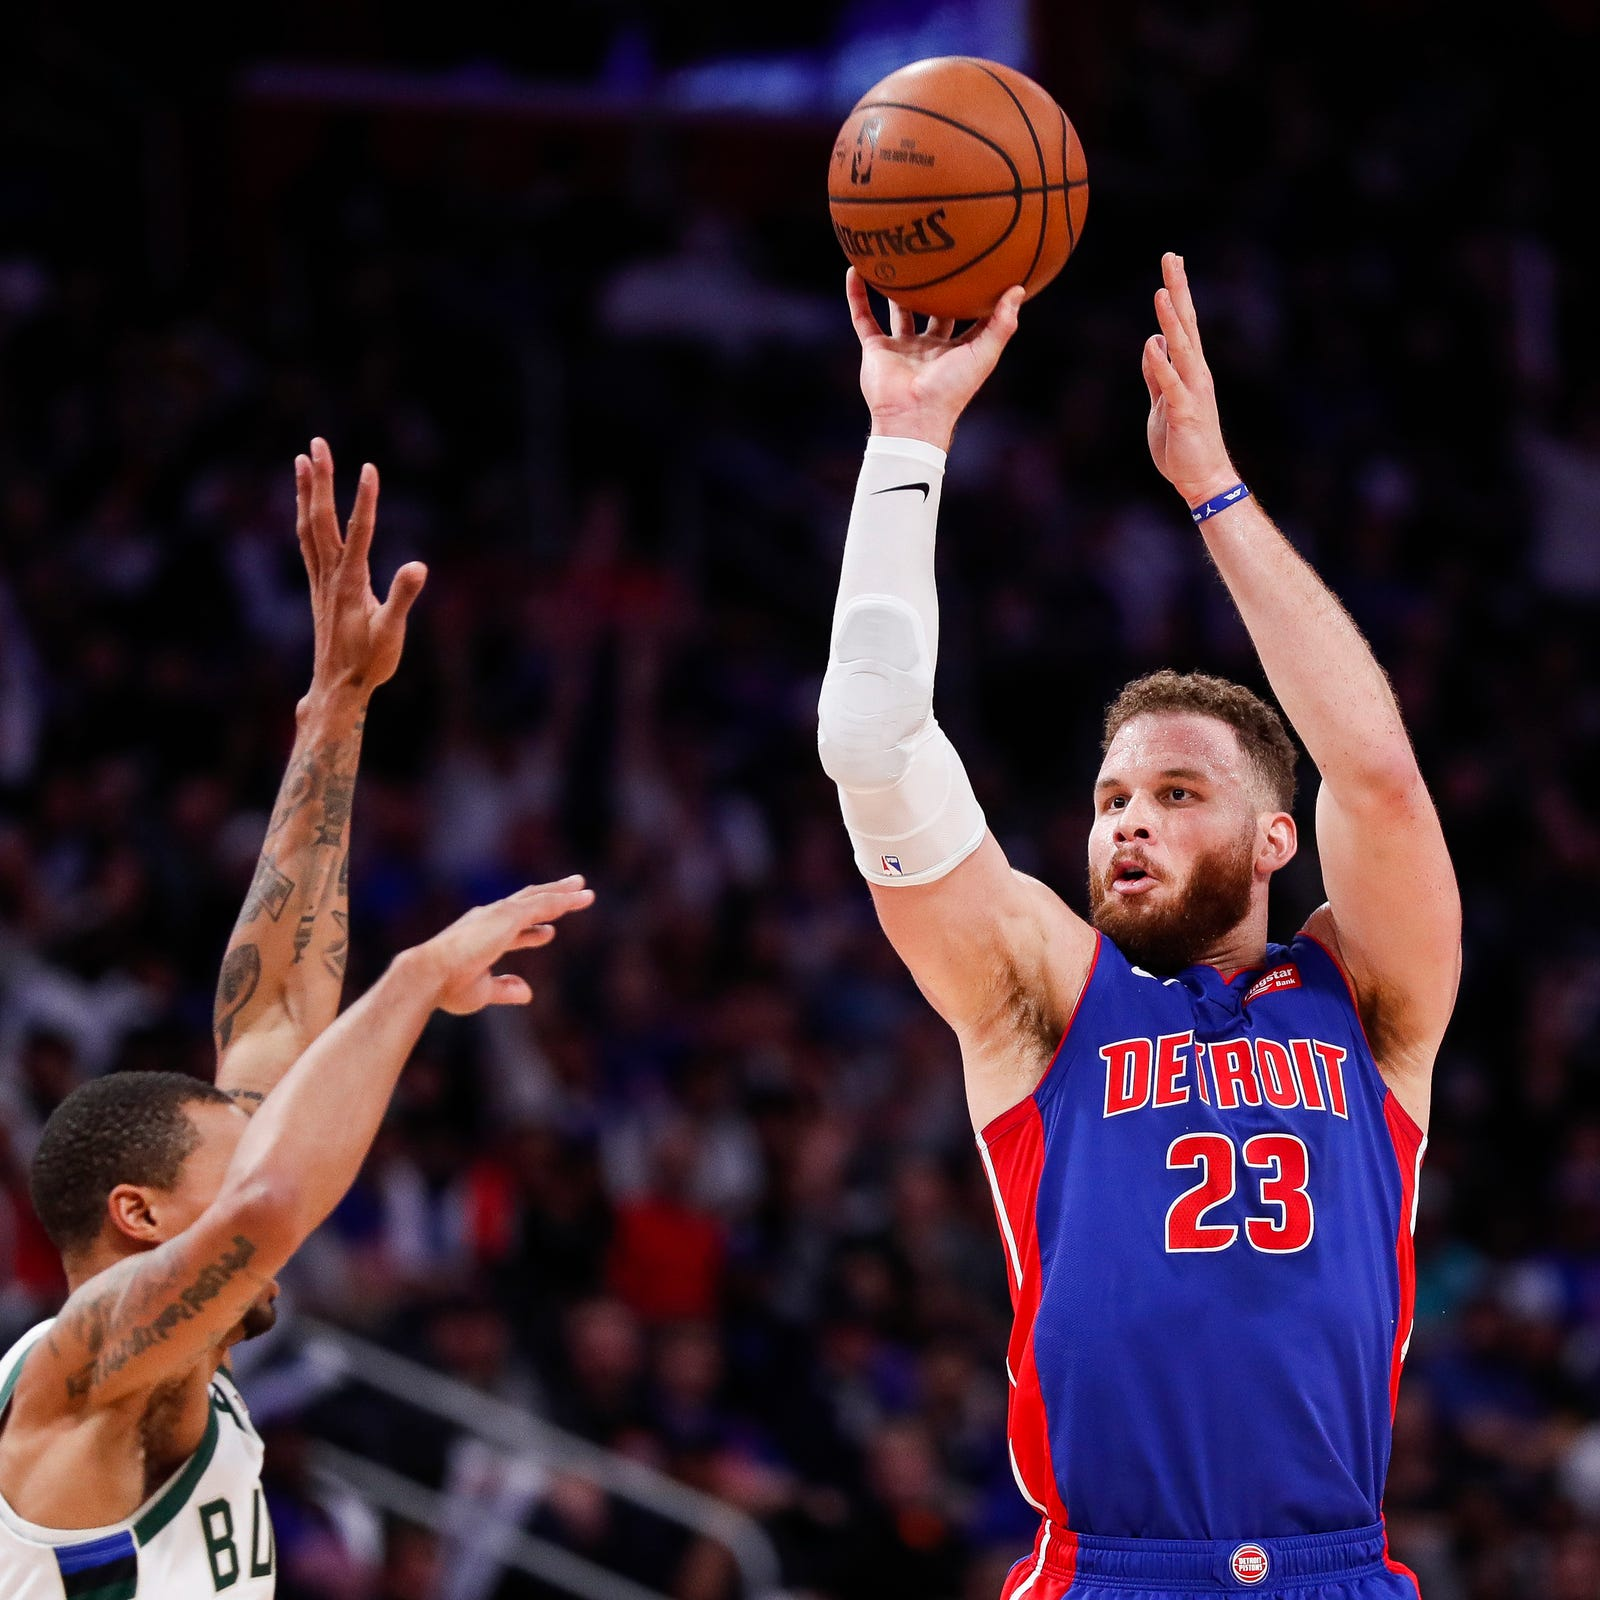 Detroit Pistons' Blake Griffin has surgery on injured knee